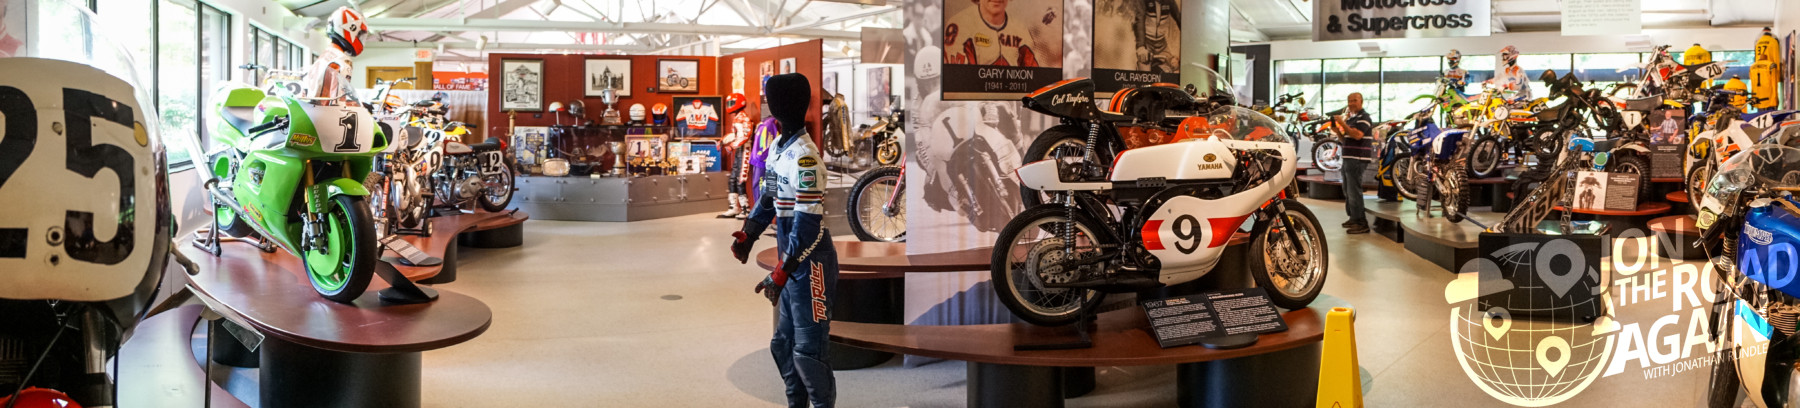 AMA Motorcycle Hall of Fame Panorama